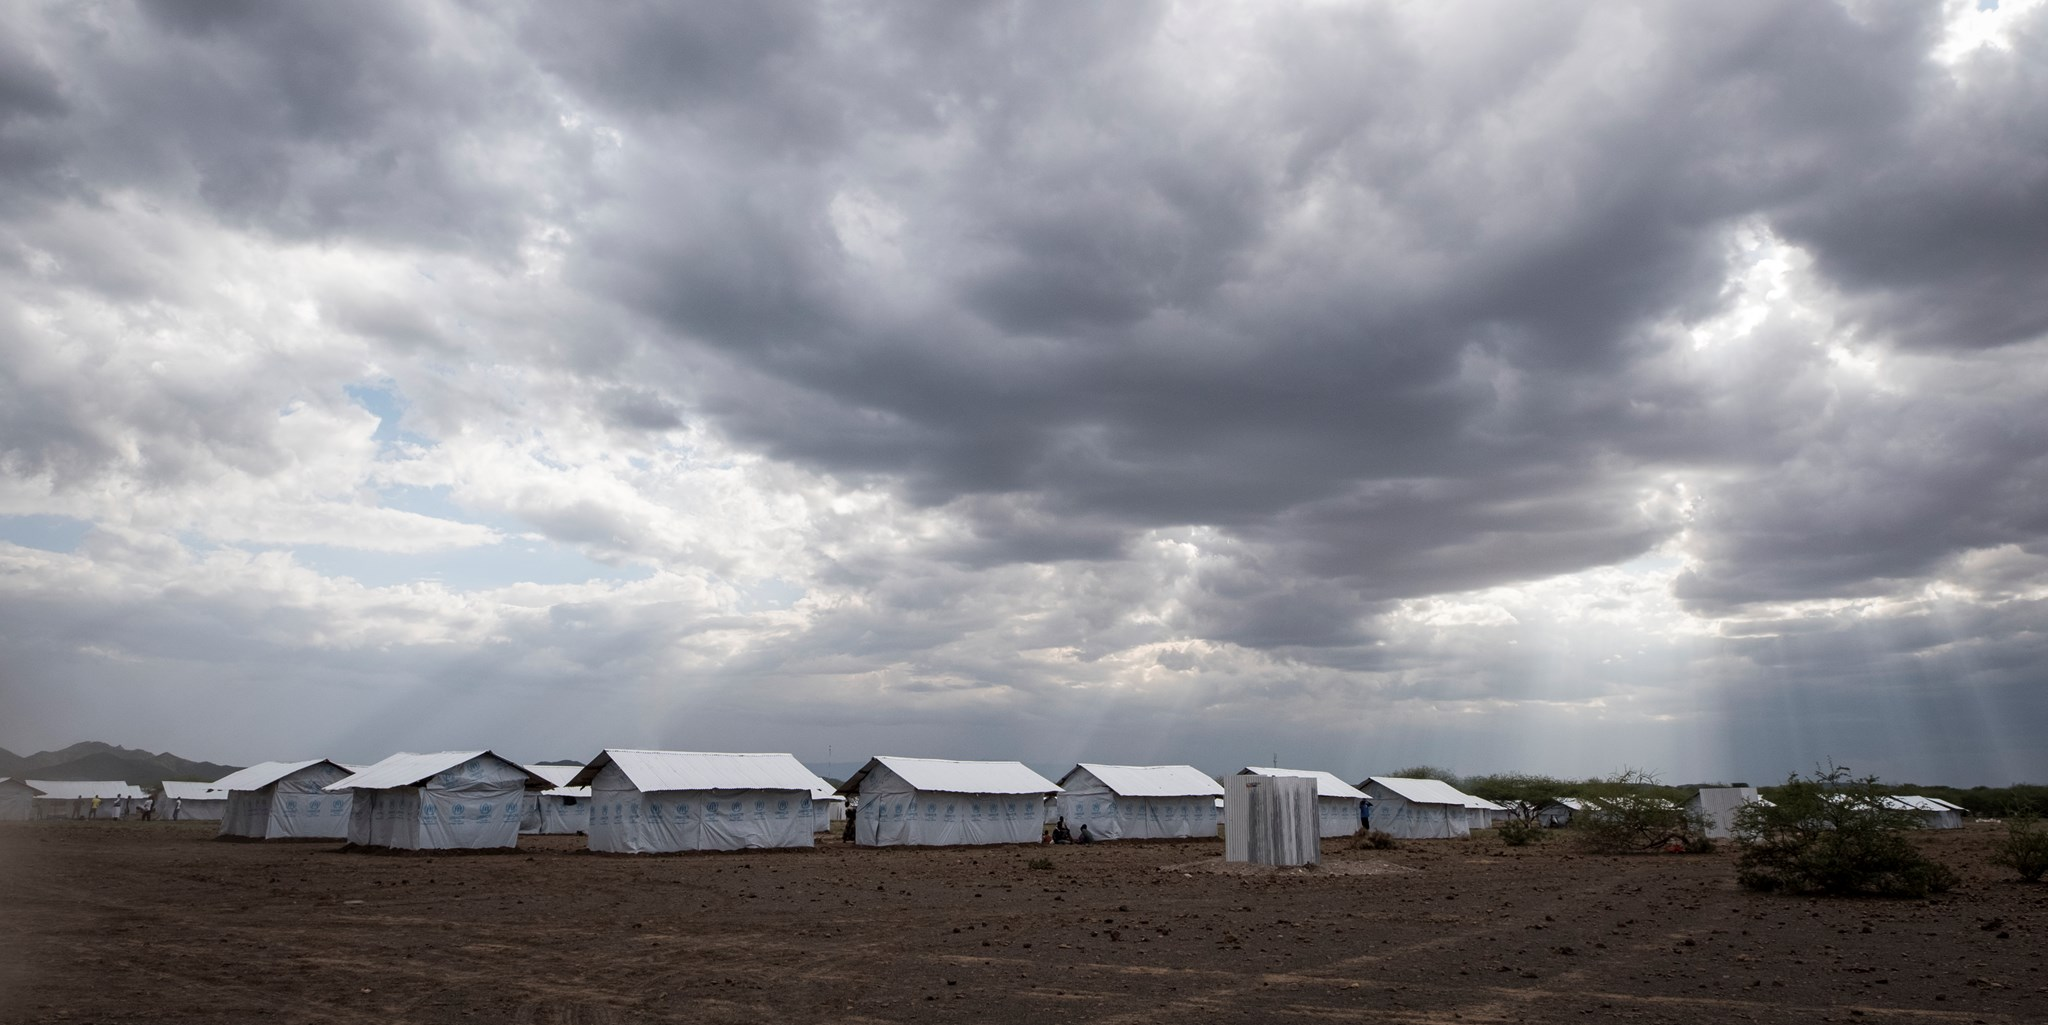 Kalobeyei Settlement Kenya August 2016 29049019124 O